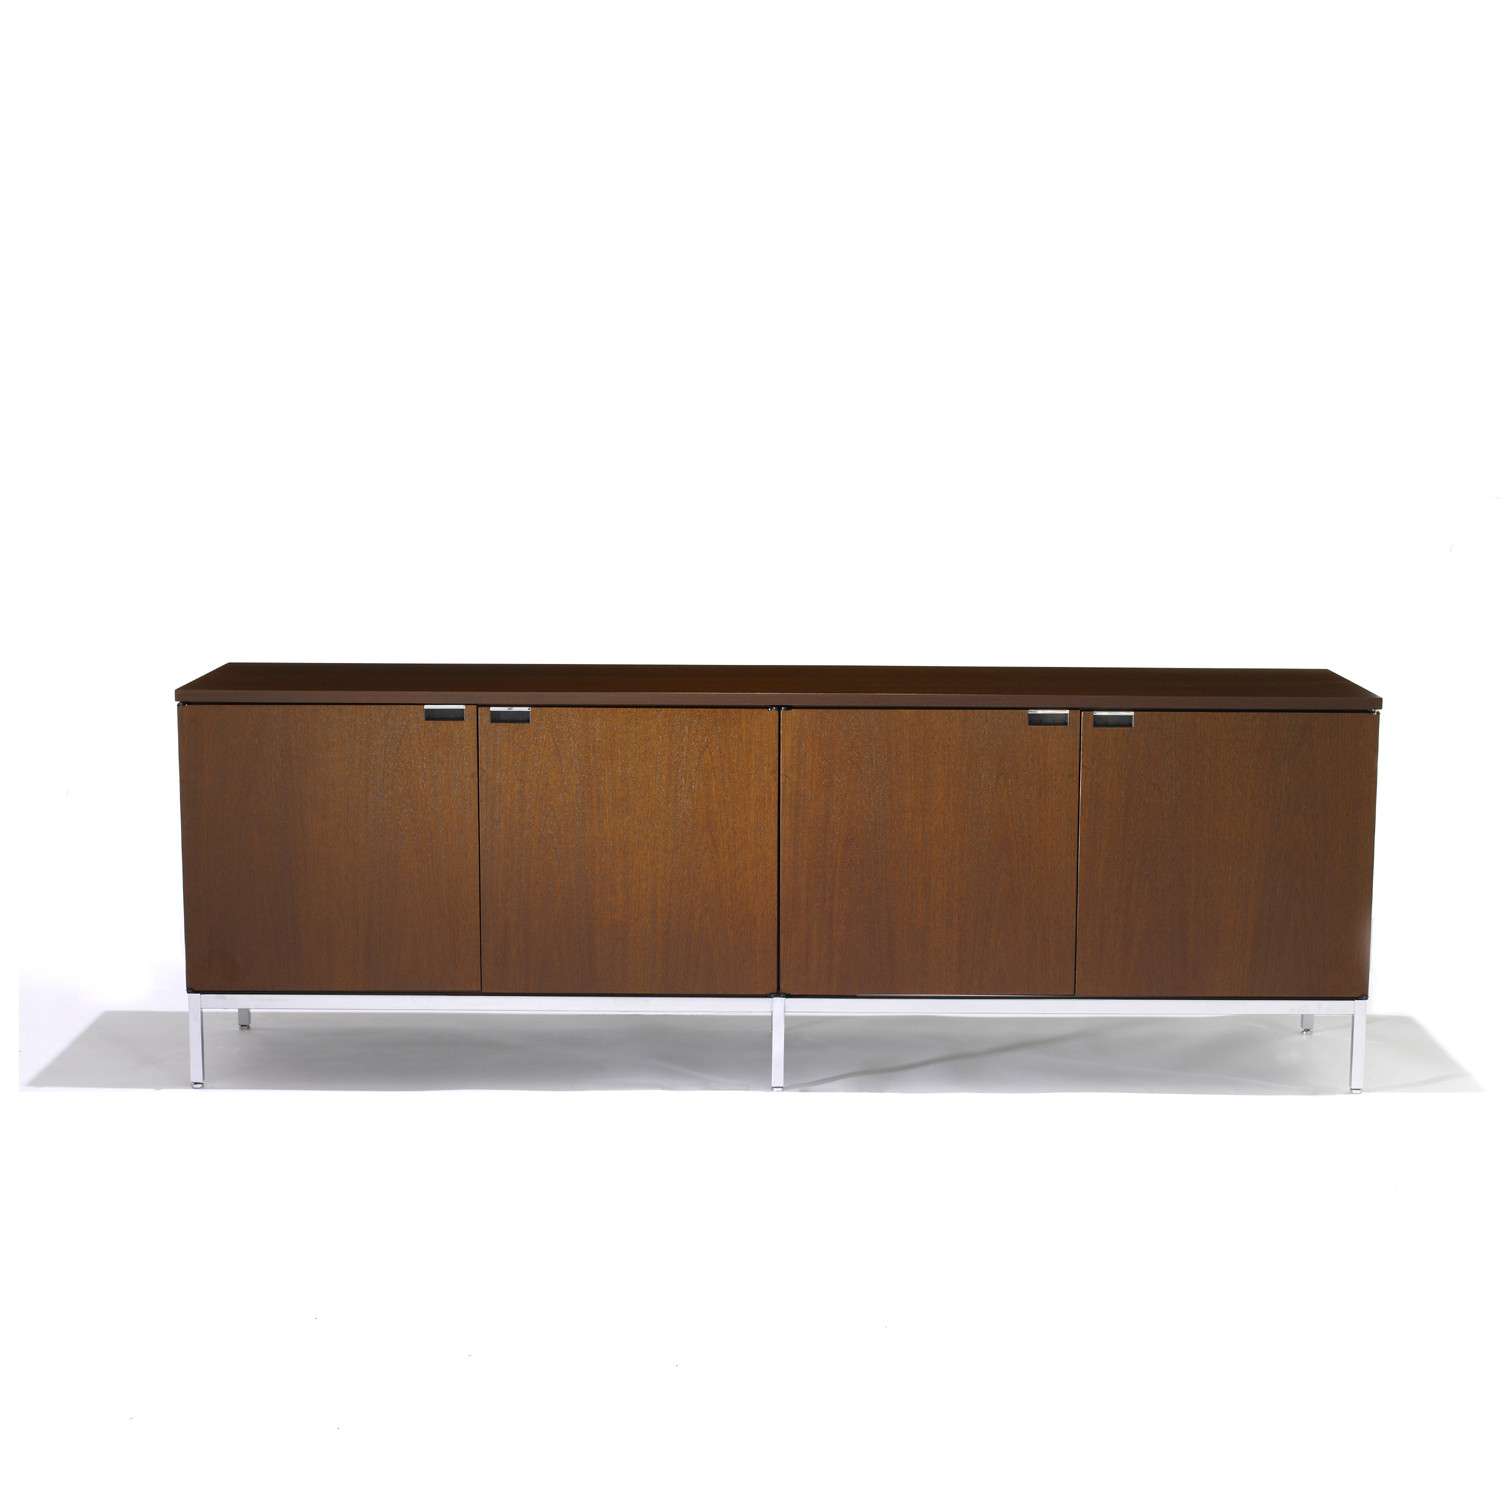 Florence Knoll Credenza Office Furniture Apres Furniture